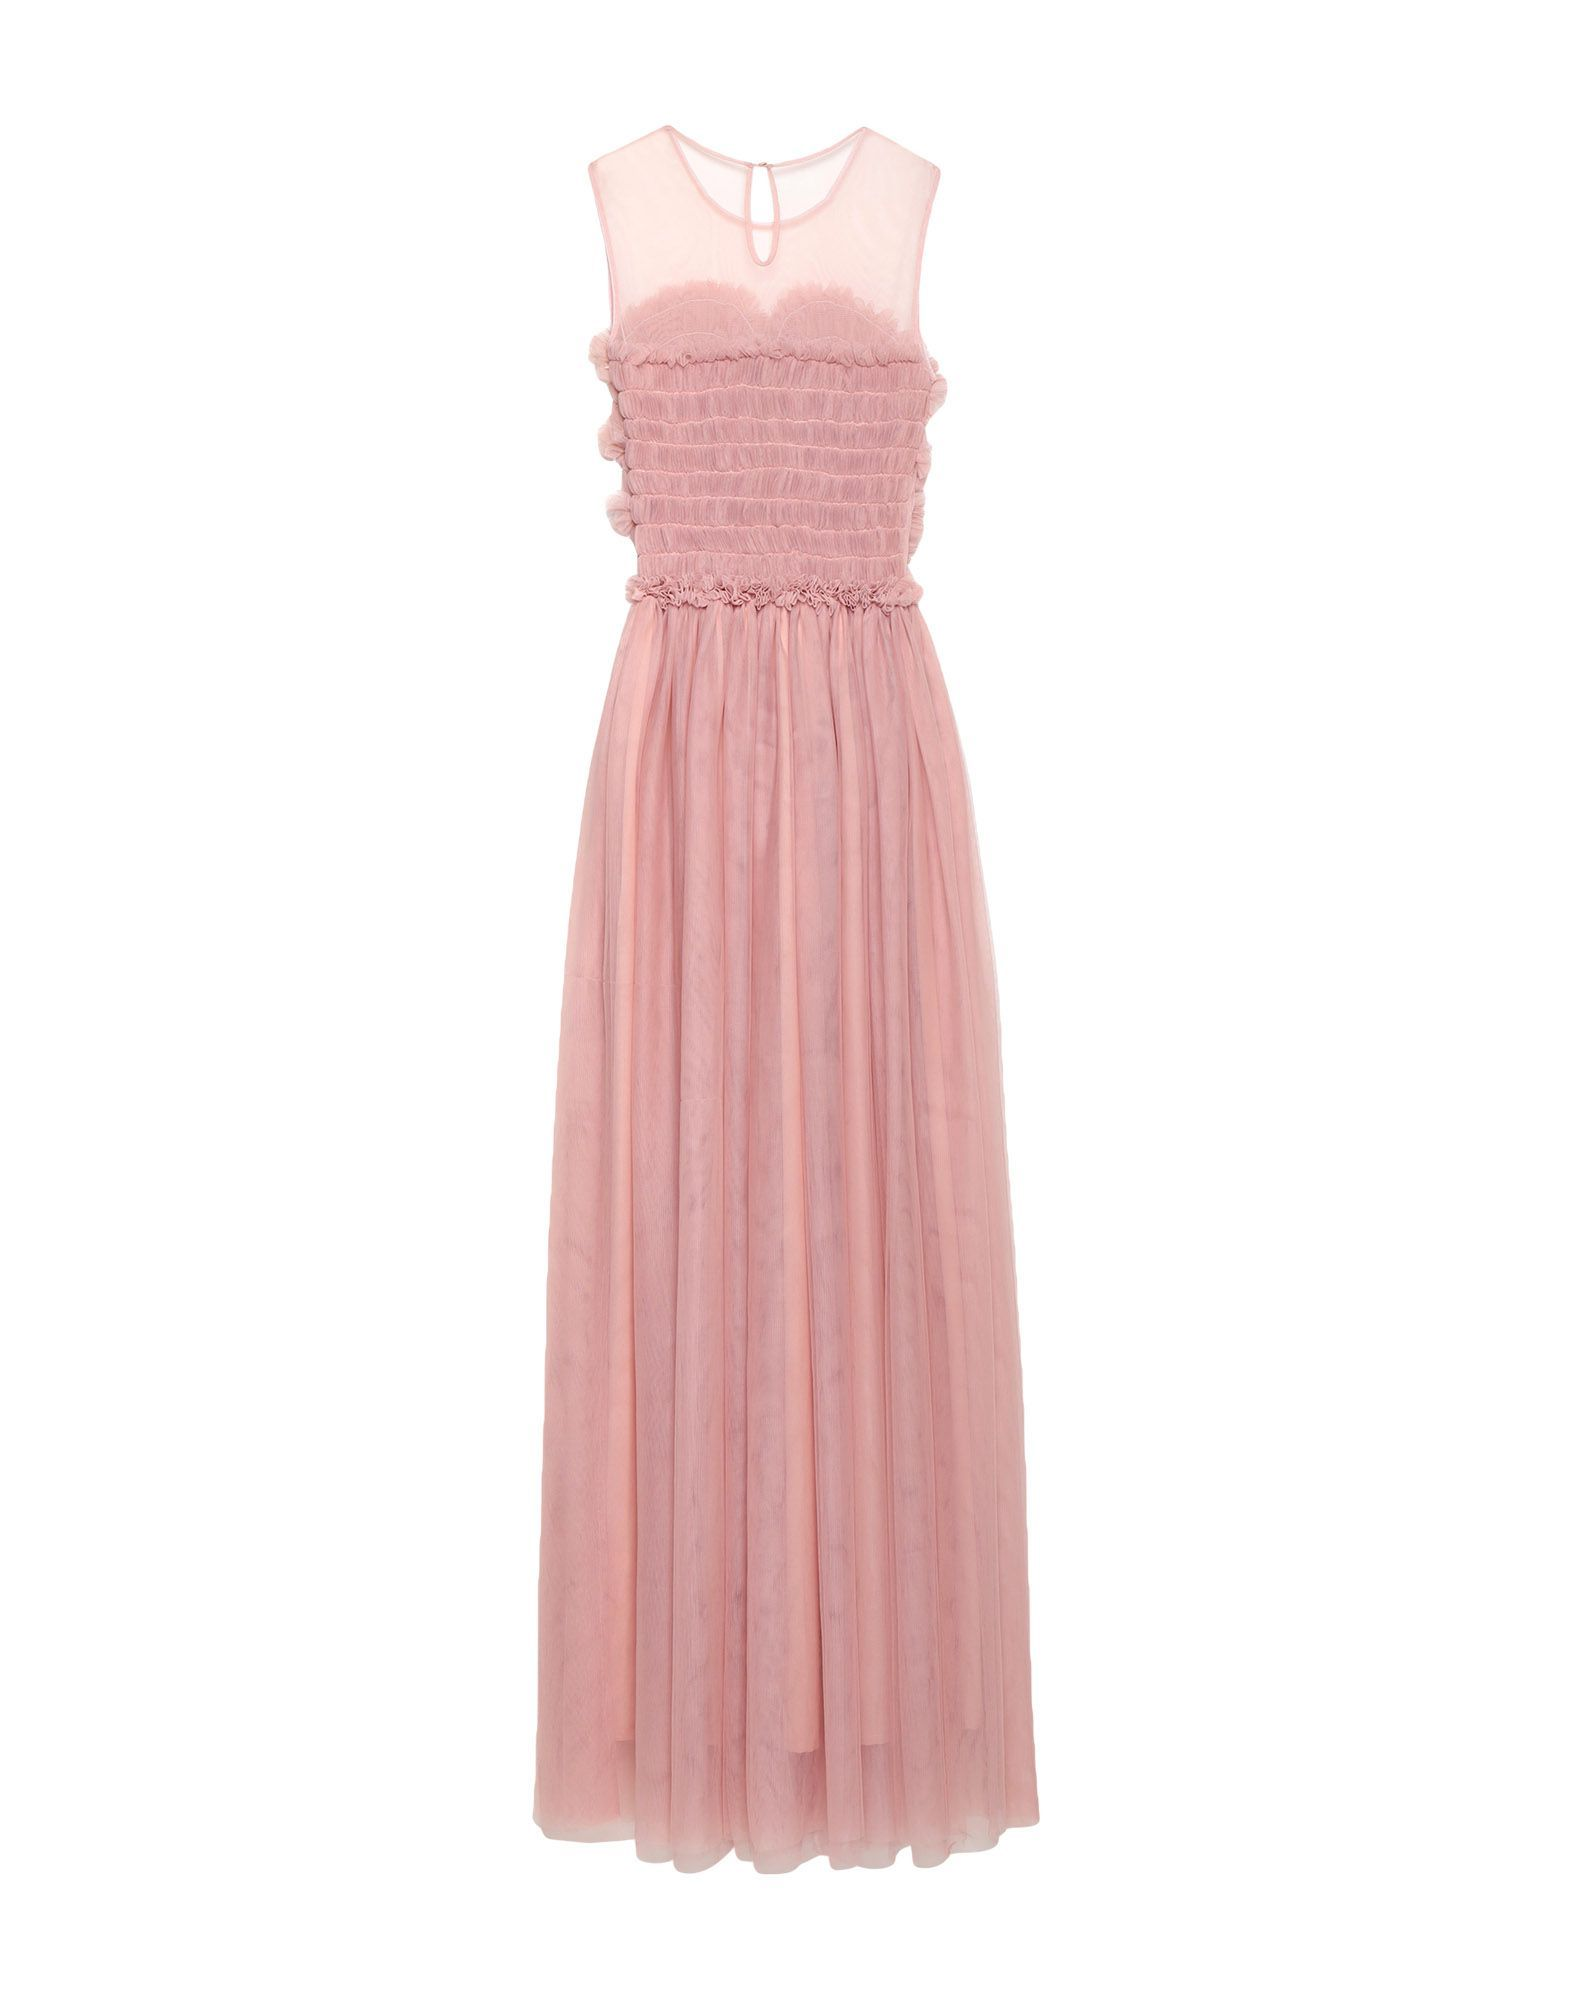 P.A.R.O.S.H. Pastel Pink Tulle And Ruffles Full Length Dress